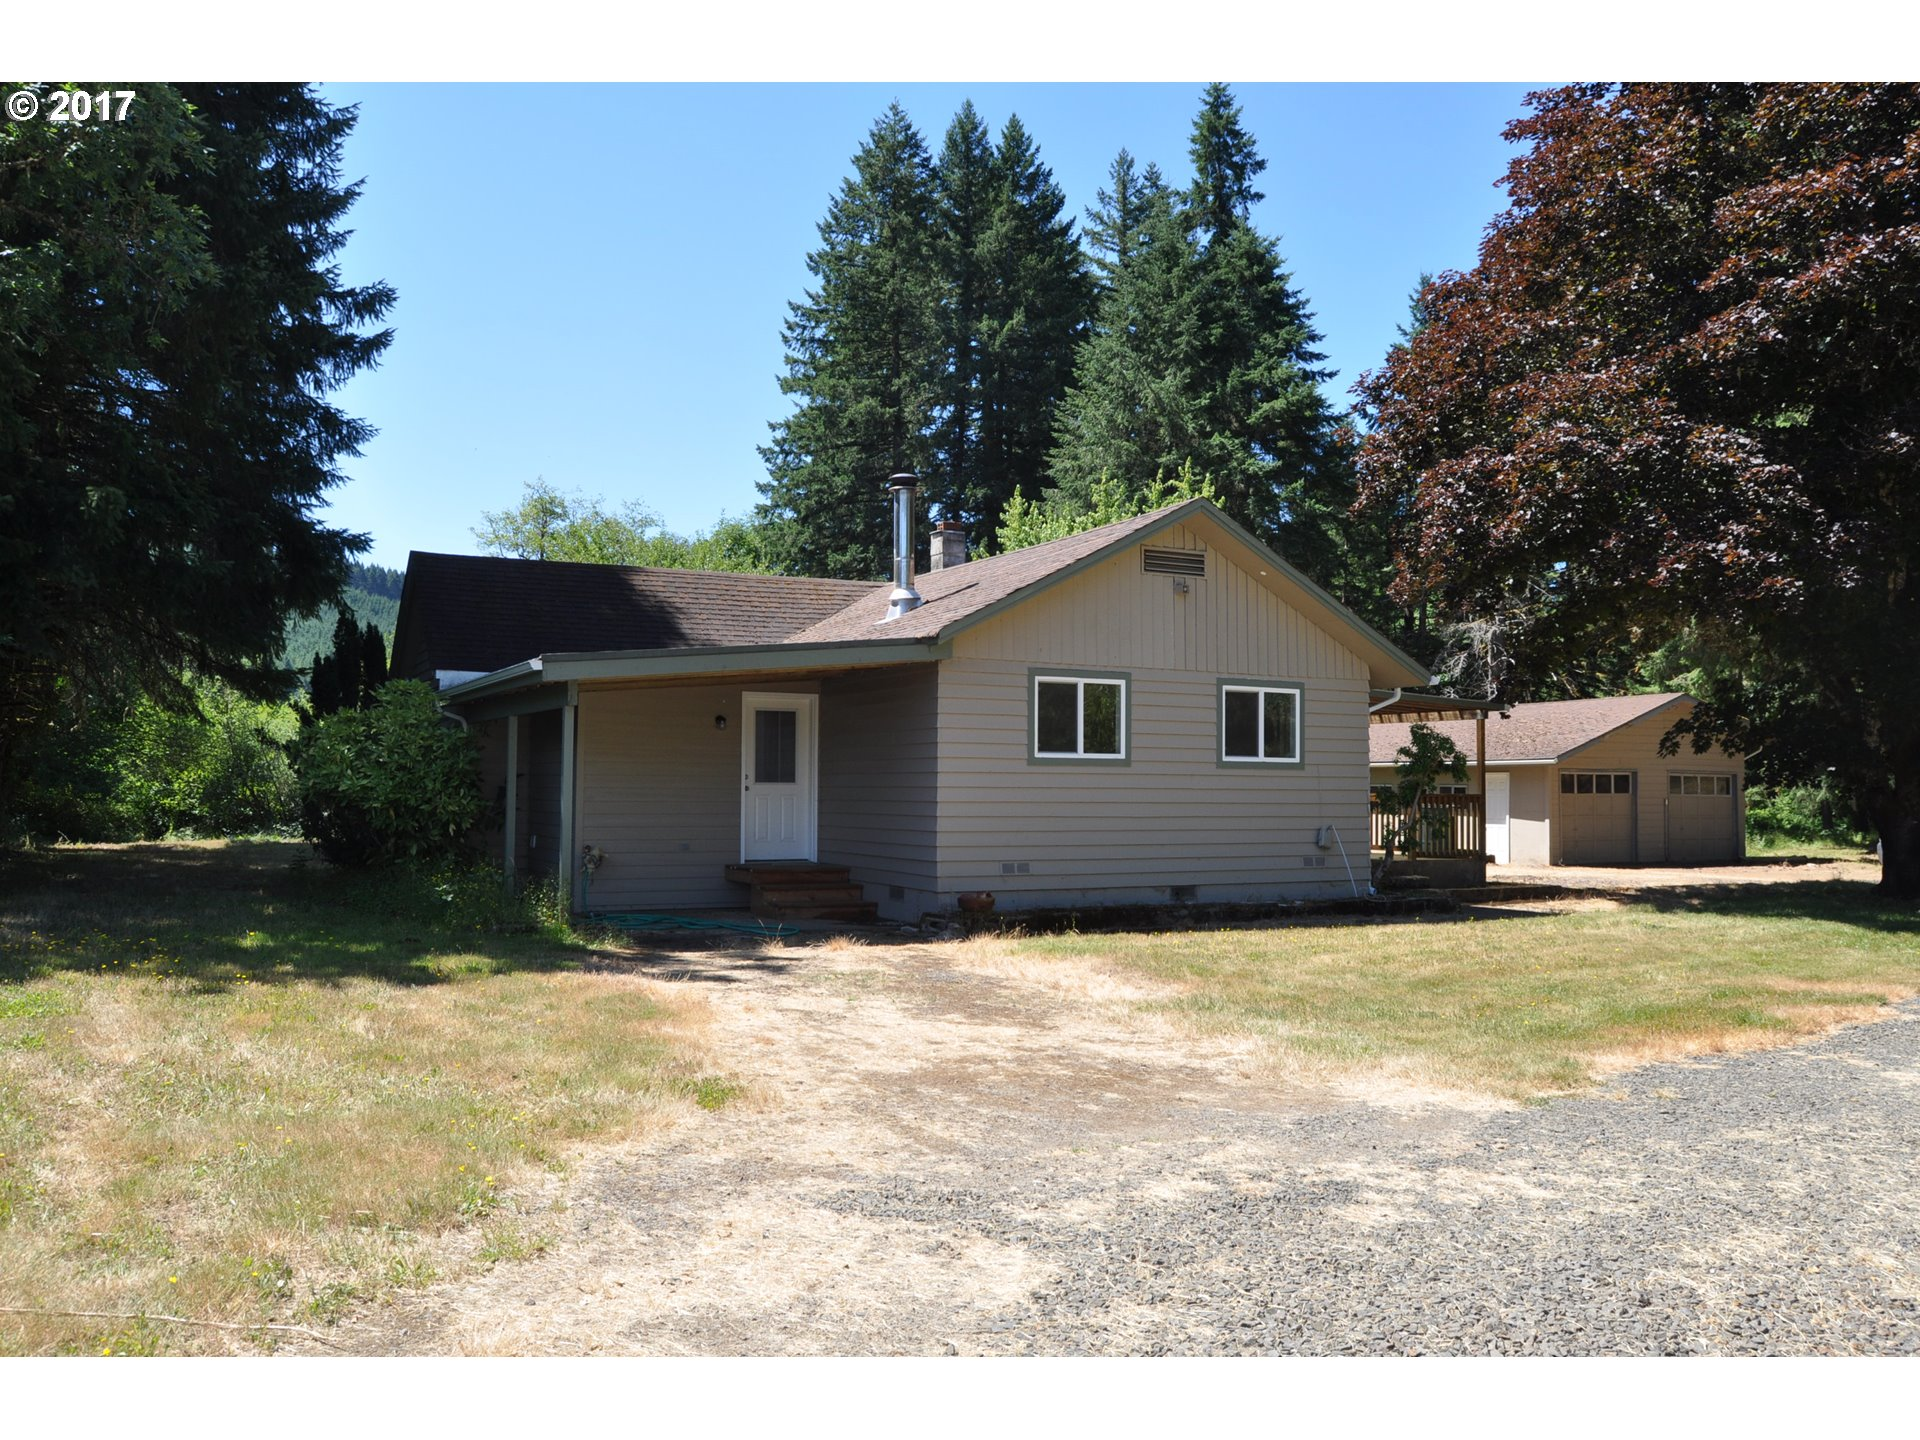 23468 HALL RD, Cheshire, OR 97419